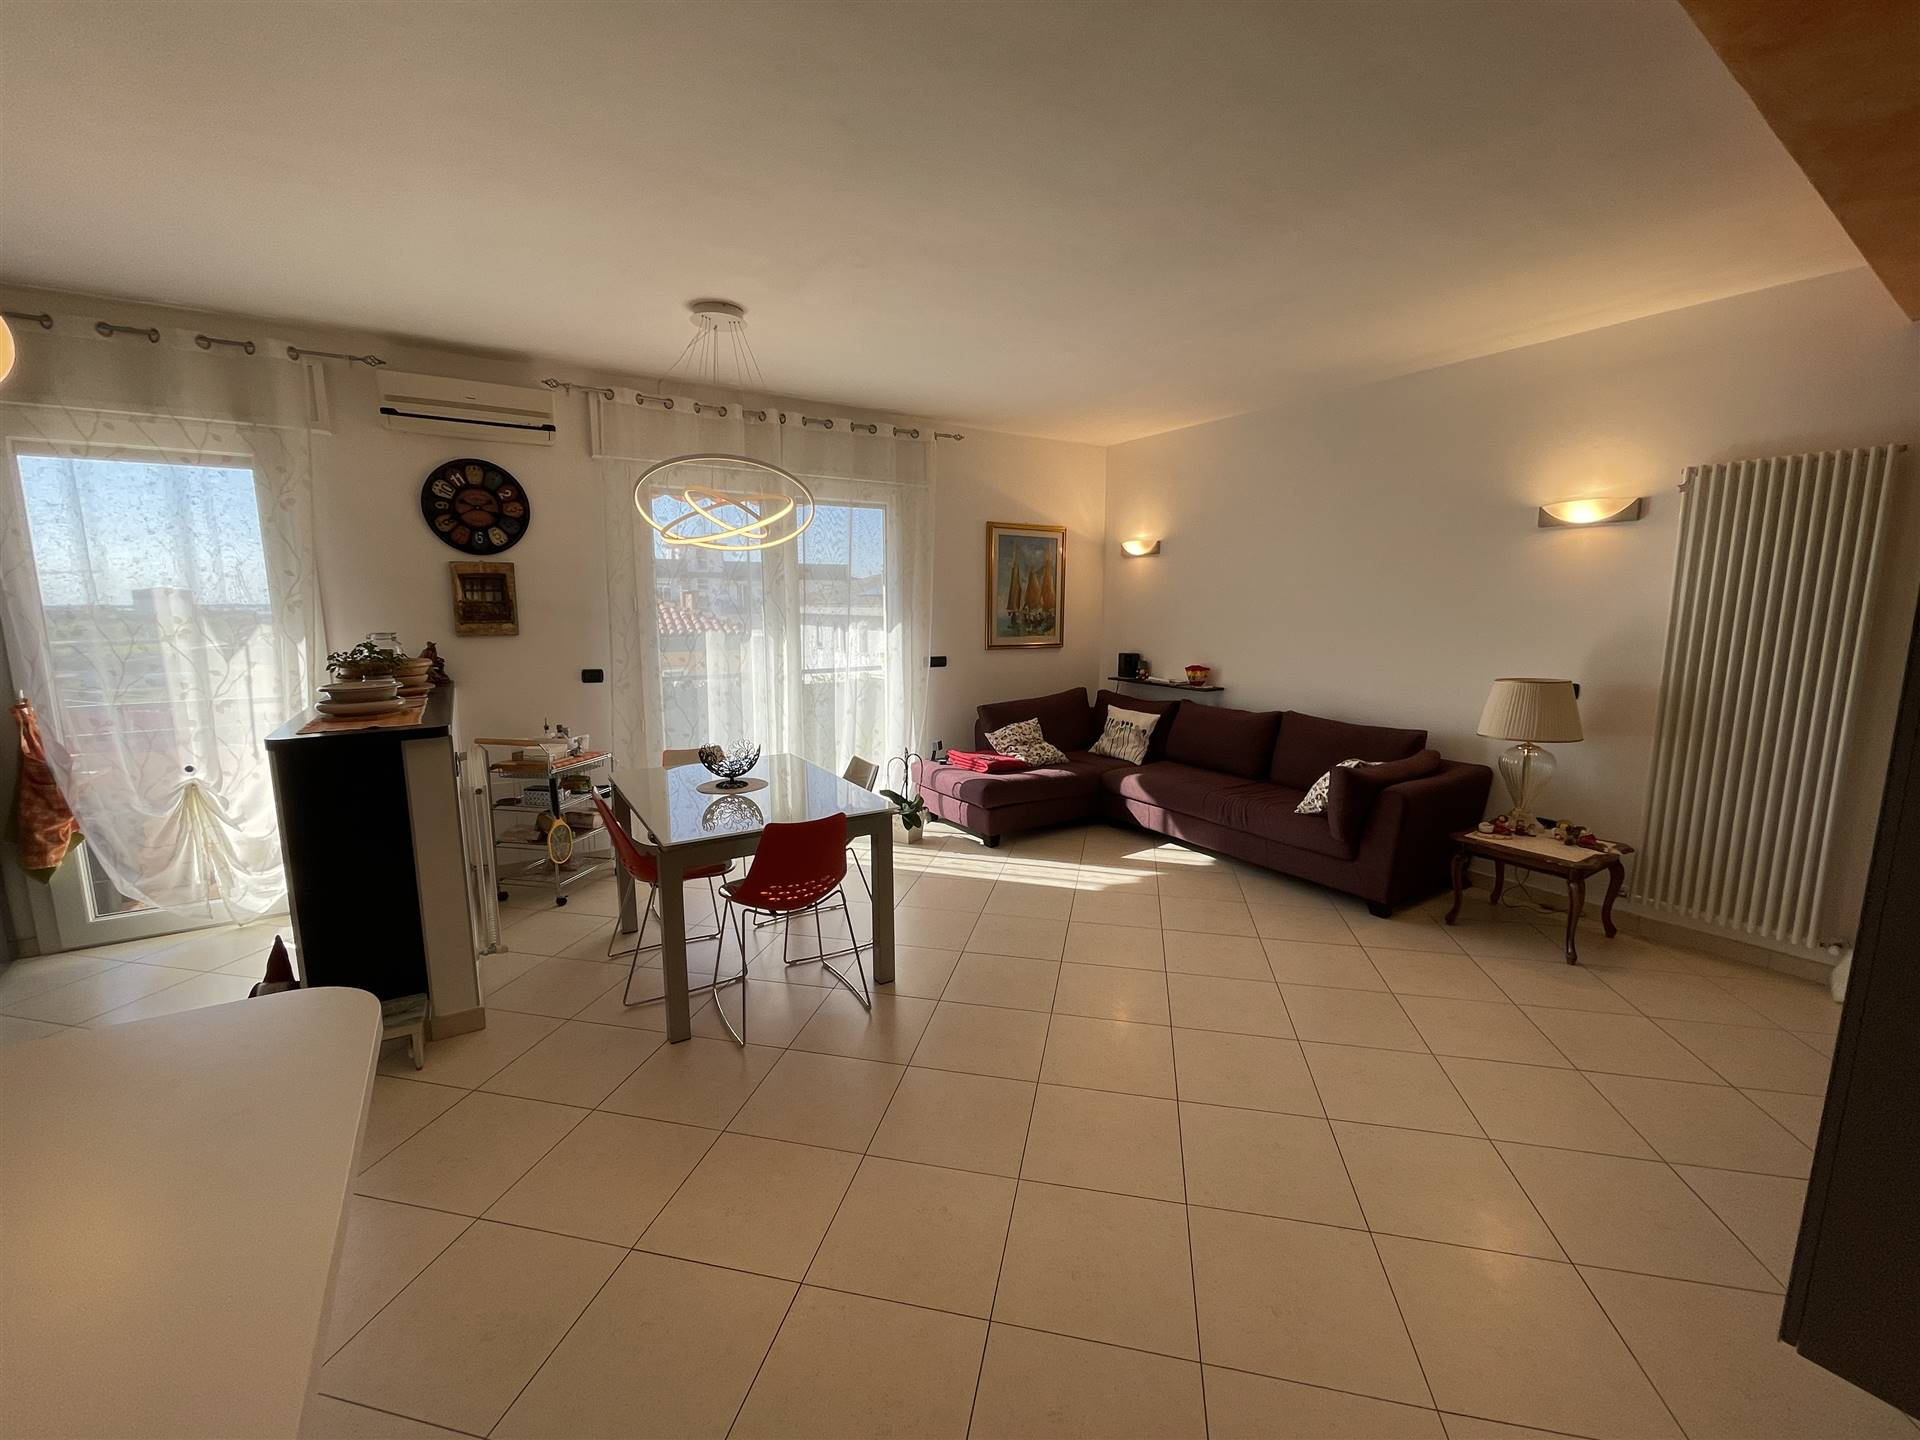 BORGO SAN GIOVANNI, CHIOGGIA, Apartment for sale, Excellent Condition, Heating Individual heating system, Energetic class: G, placed at 4° on 5,